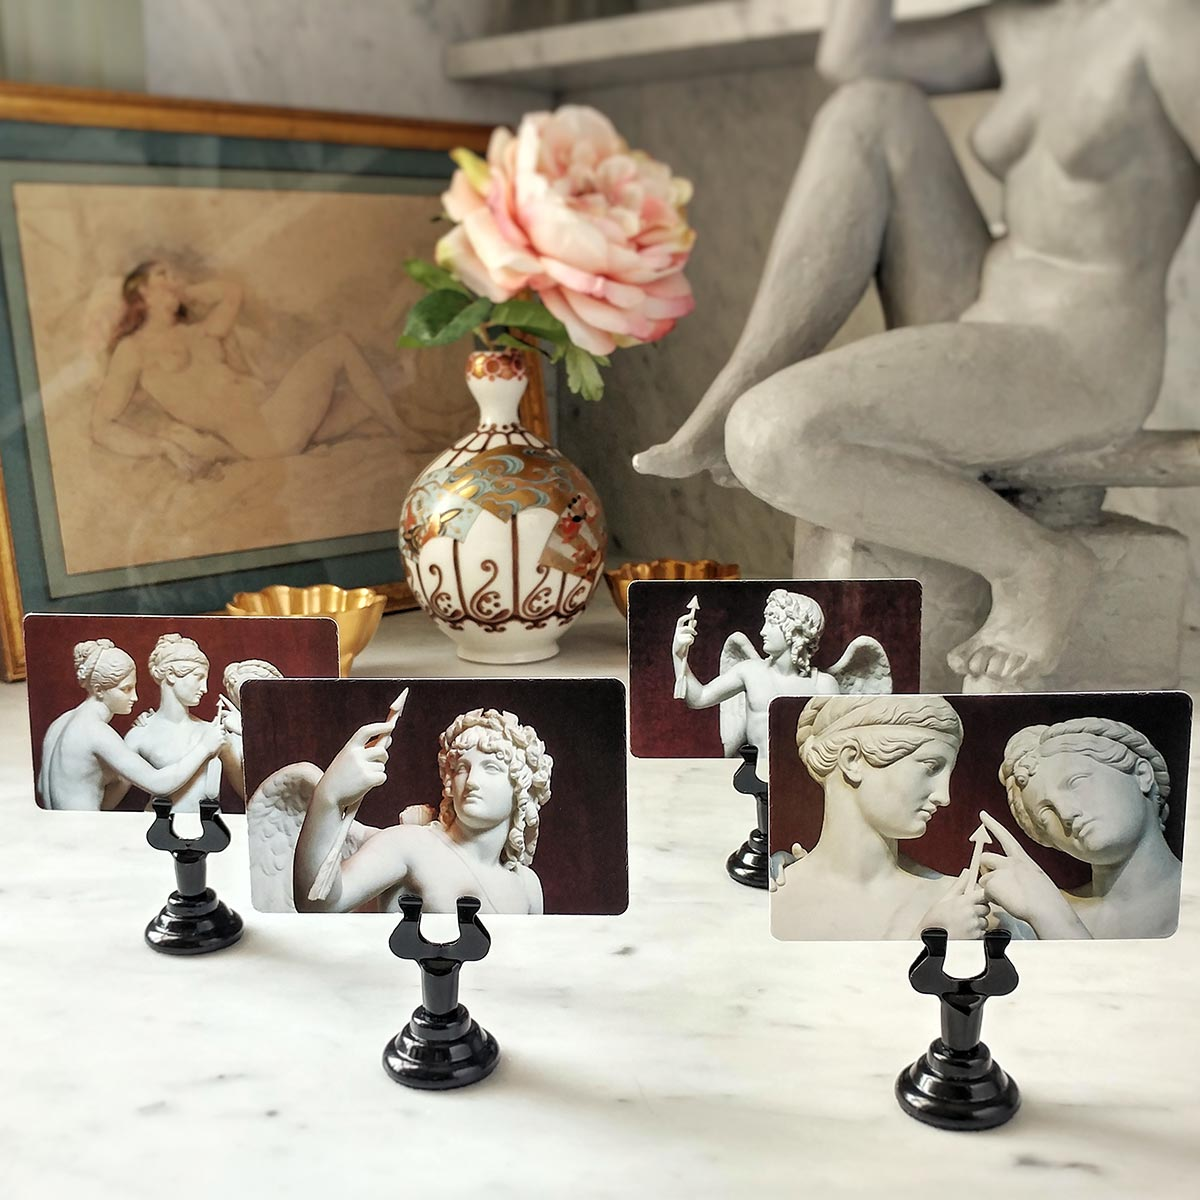 The Punctilious Mr. P's 'Cupid's Arrow' Valentine's Day place card set featuring the graces and cupid